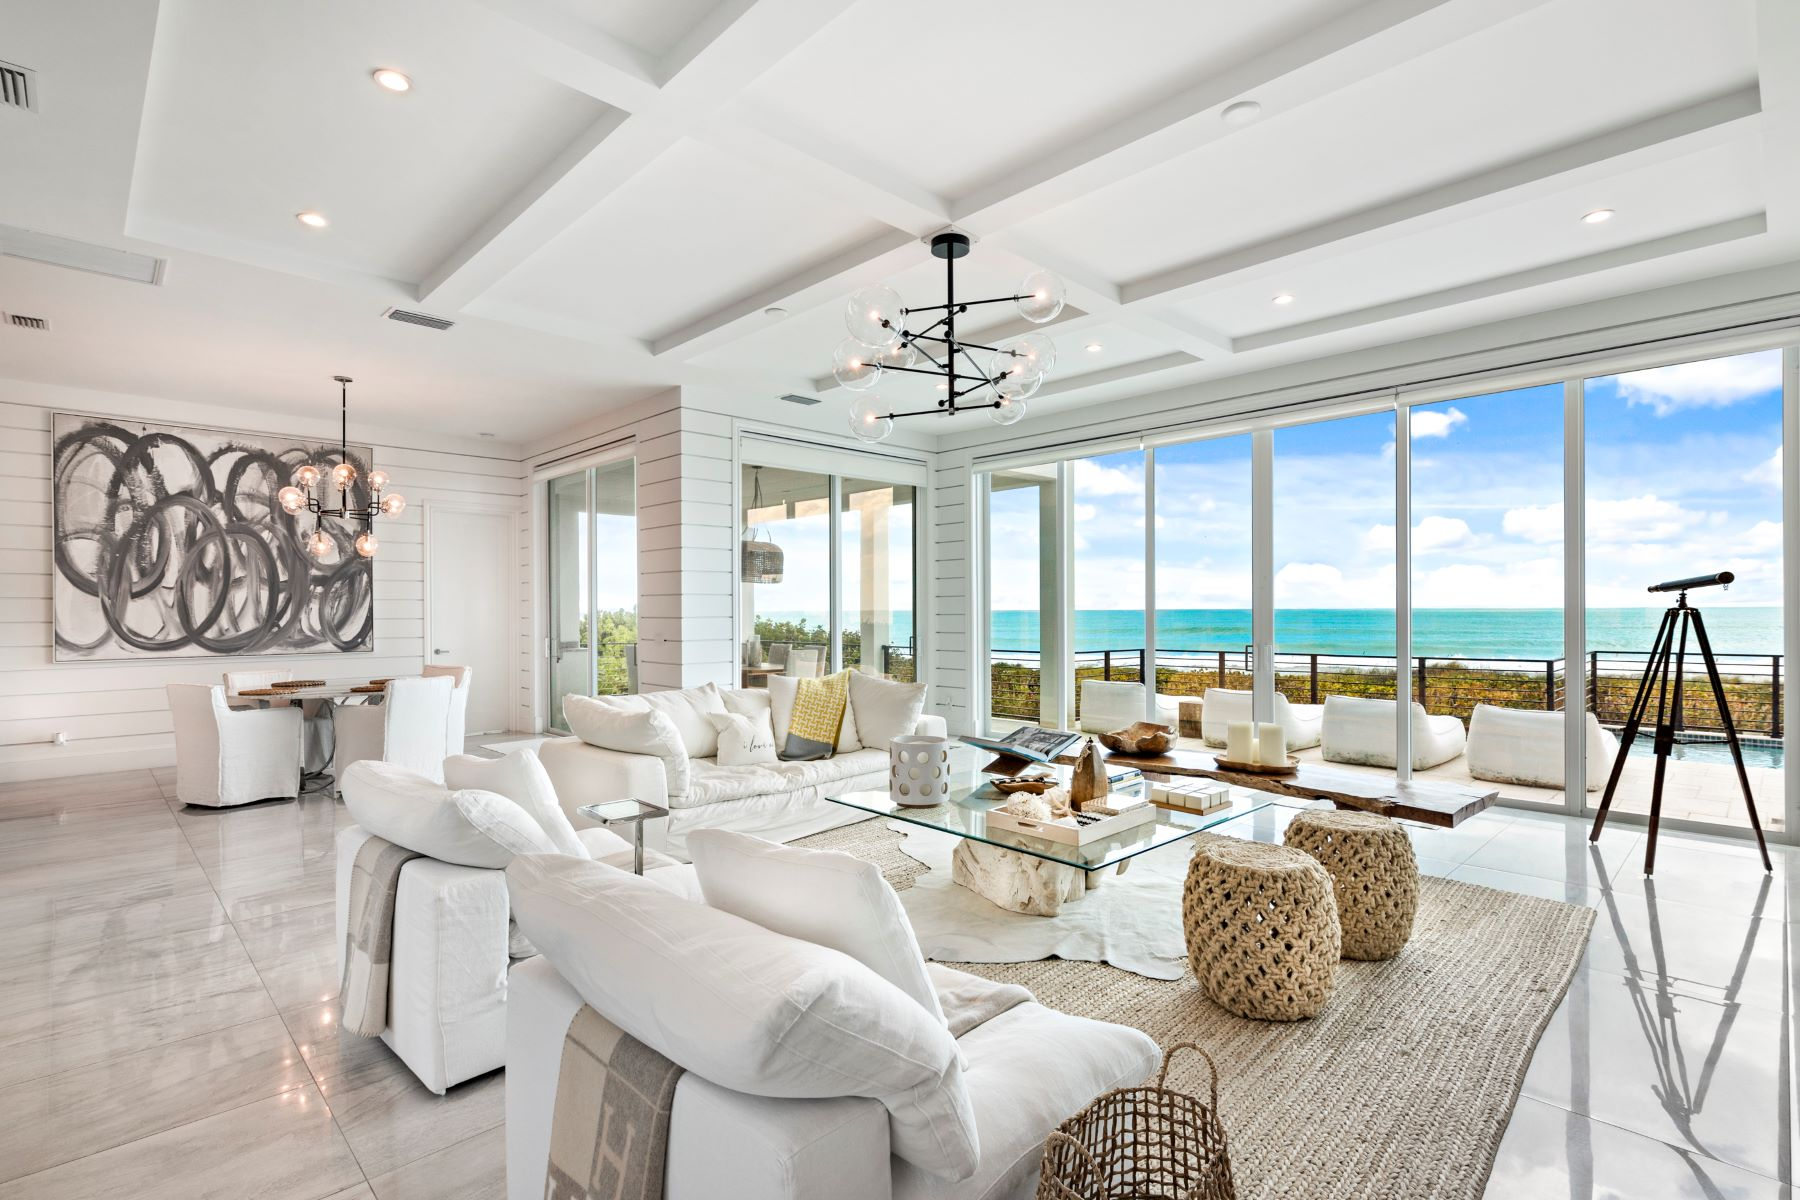 Property for Sale at Oceanfront Designer Masterpiece 4440 N Highway A1A Hutchinson Island, Florida 34949 United States